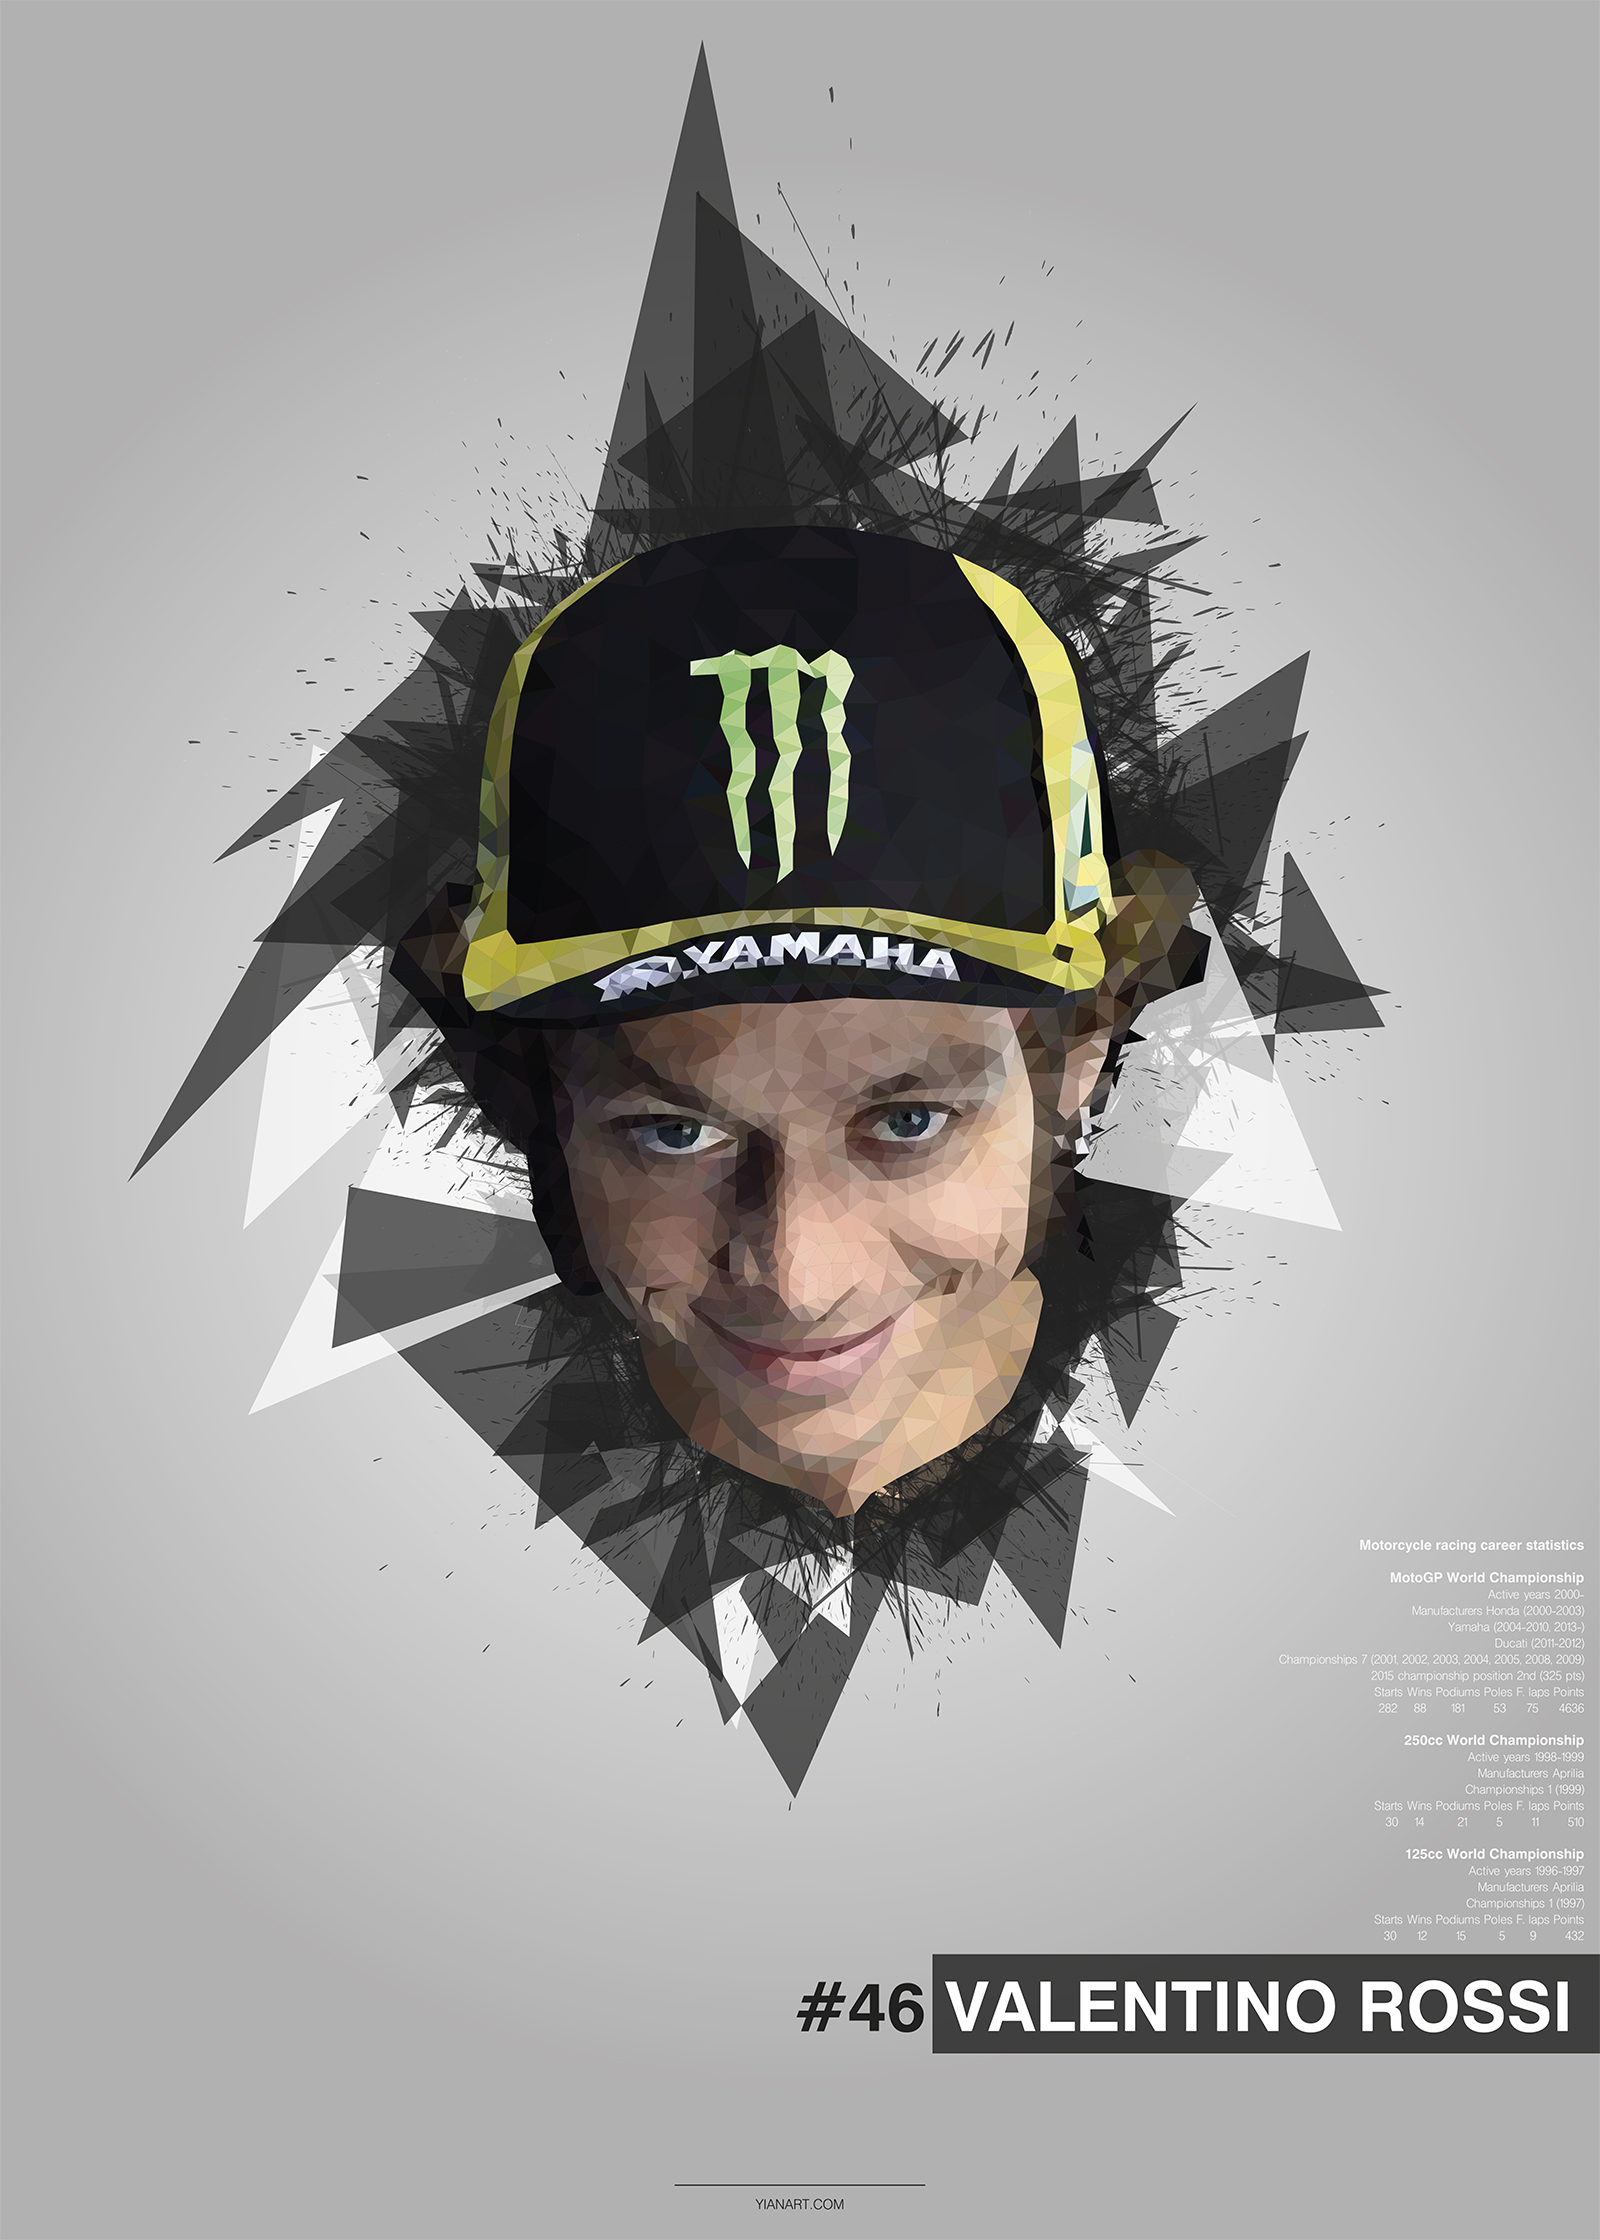 Valentino Rossi - Top Athletes Low Poly Design_yianart.com